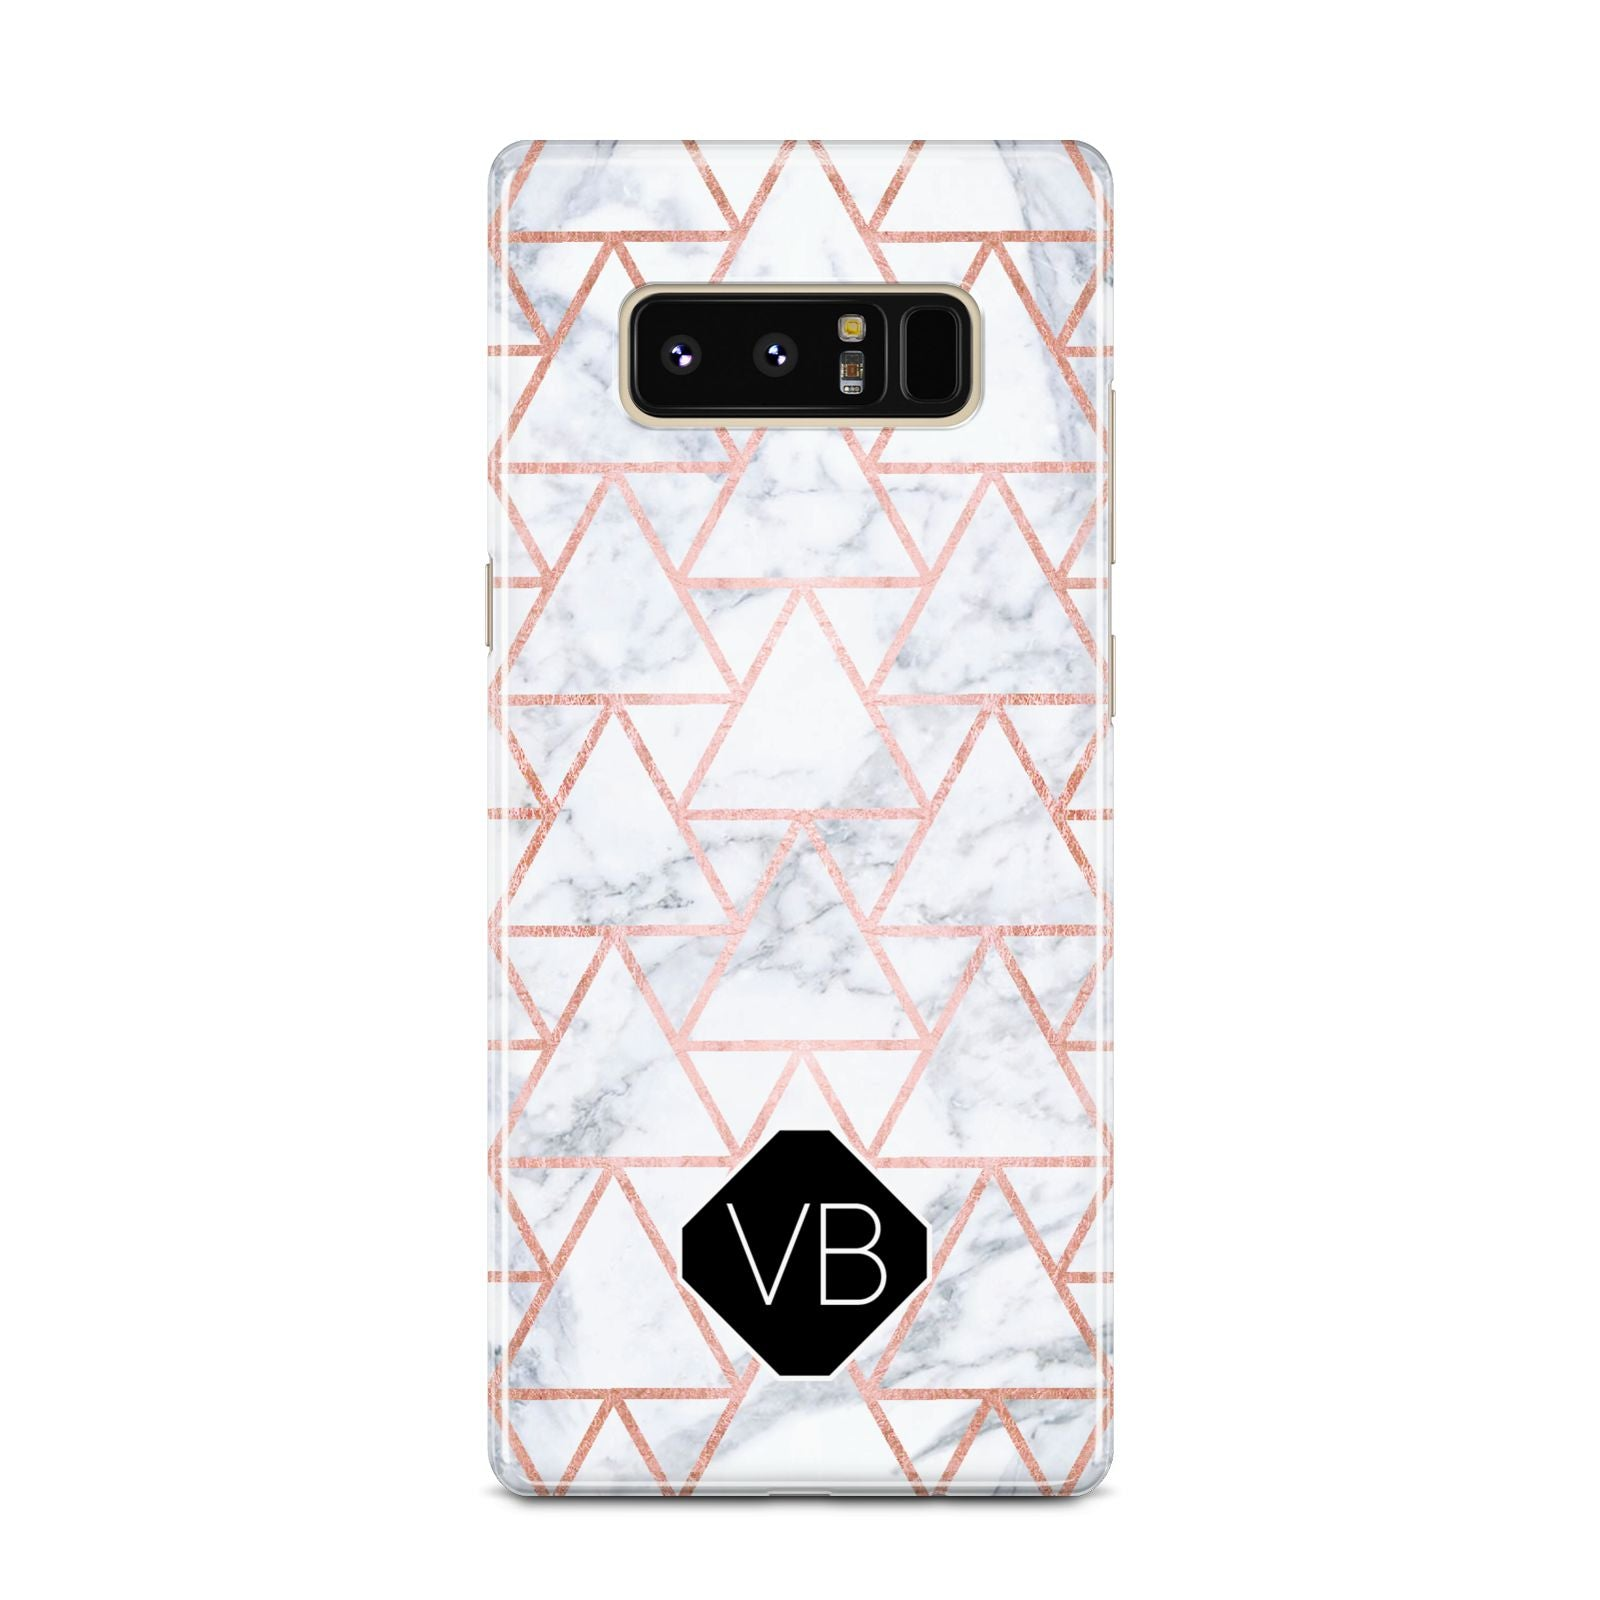 Personalised Rose Gold Grey Marble Hexagon Samsung Galaxy Note 8 Case